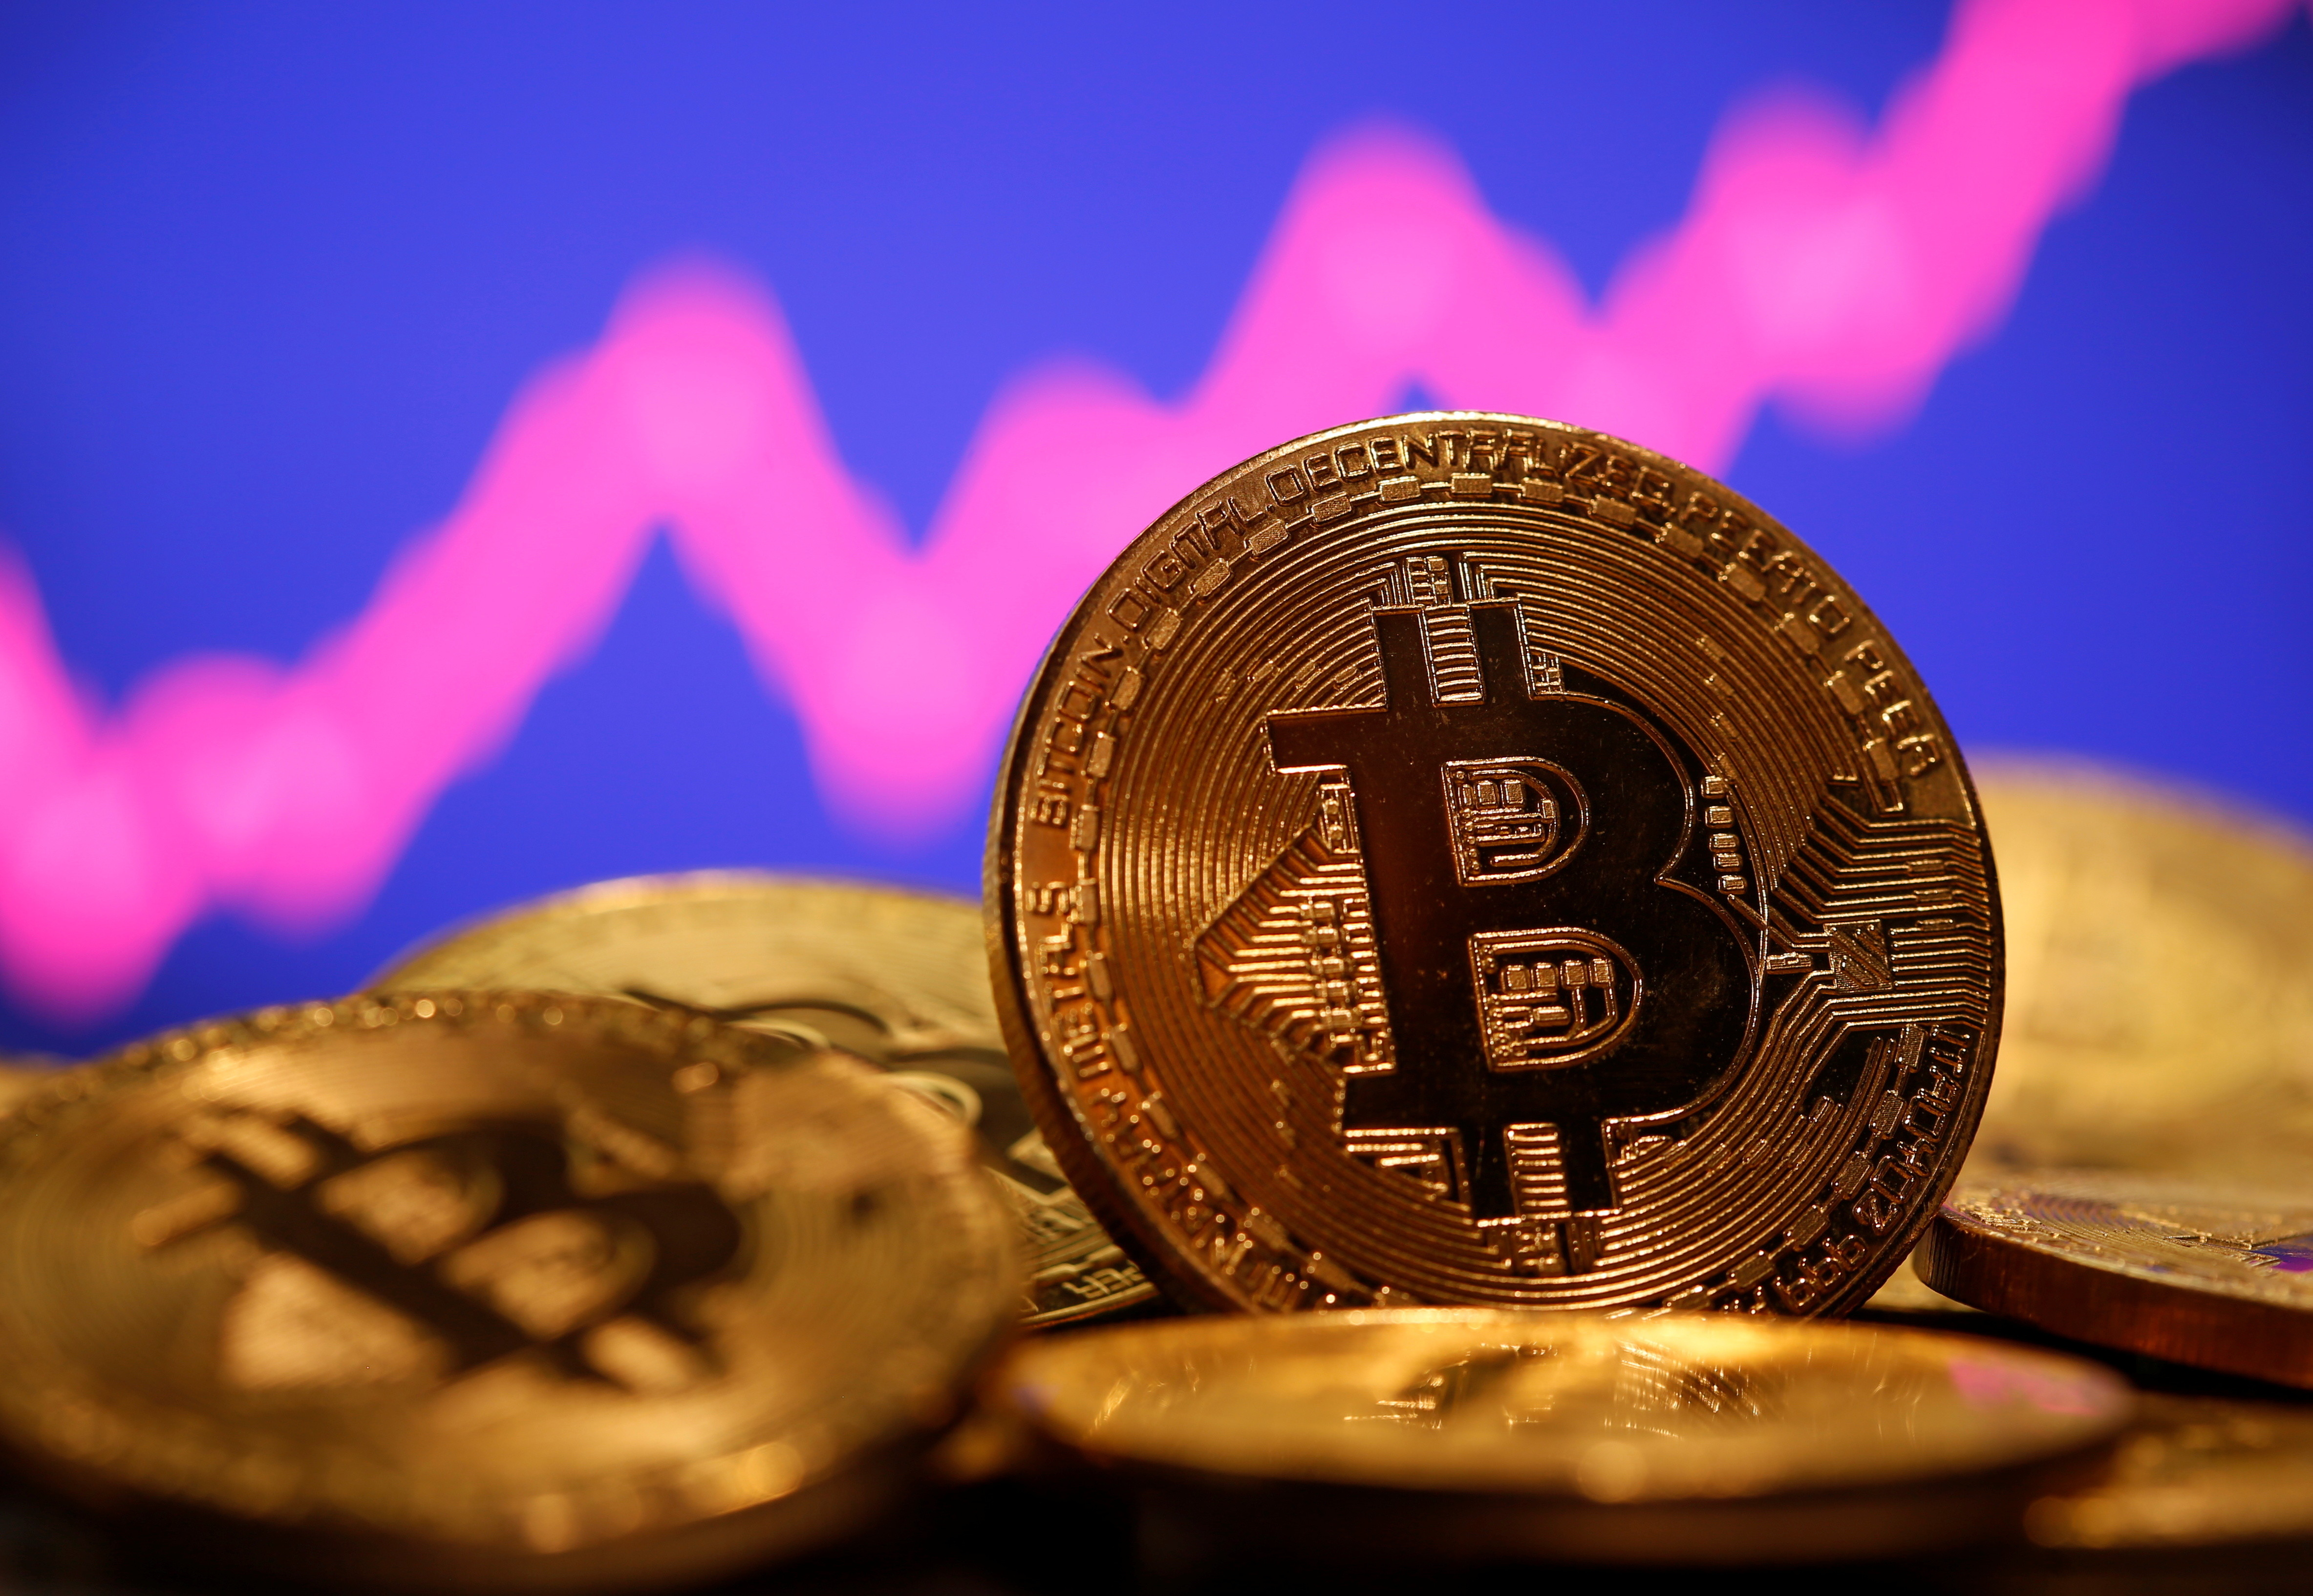 A representation of virtual currency Bitcoin is seen in front of a stock graph in this illustration taken January 8, 2021. REUTERS/Dado Ruvic - RC2R3L9VNVBH